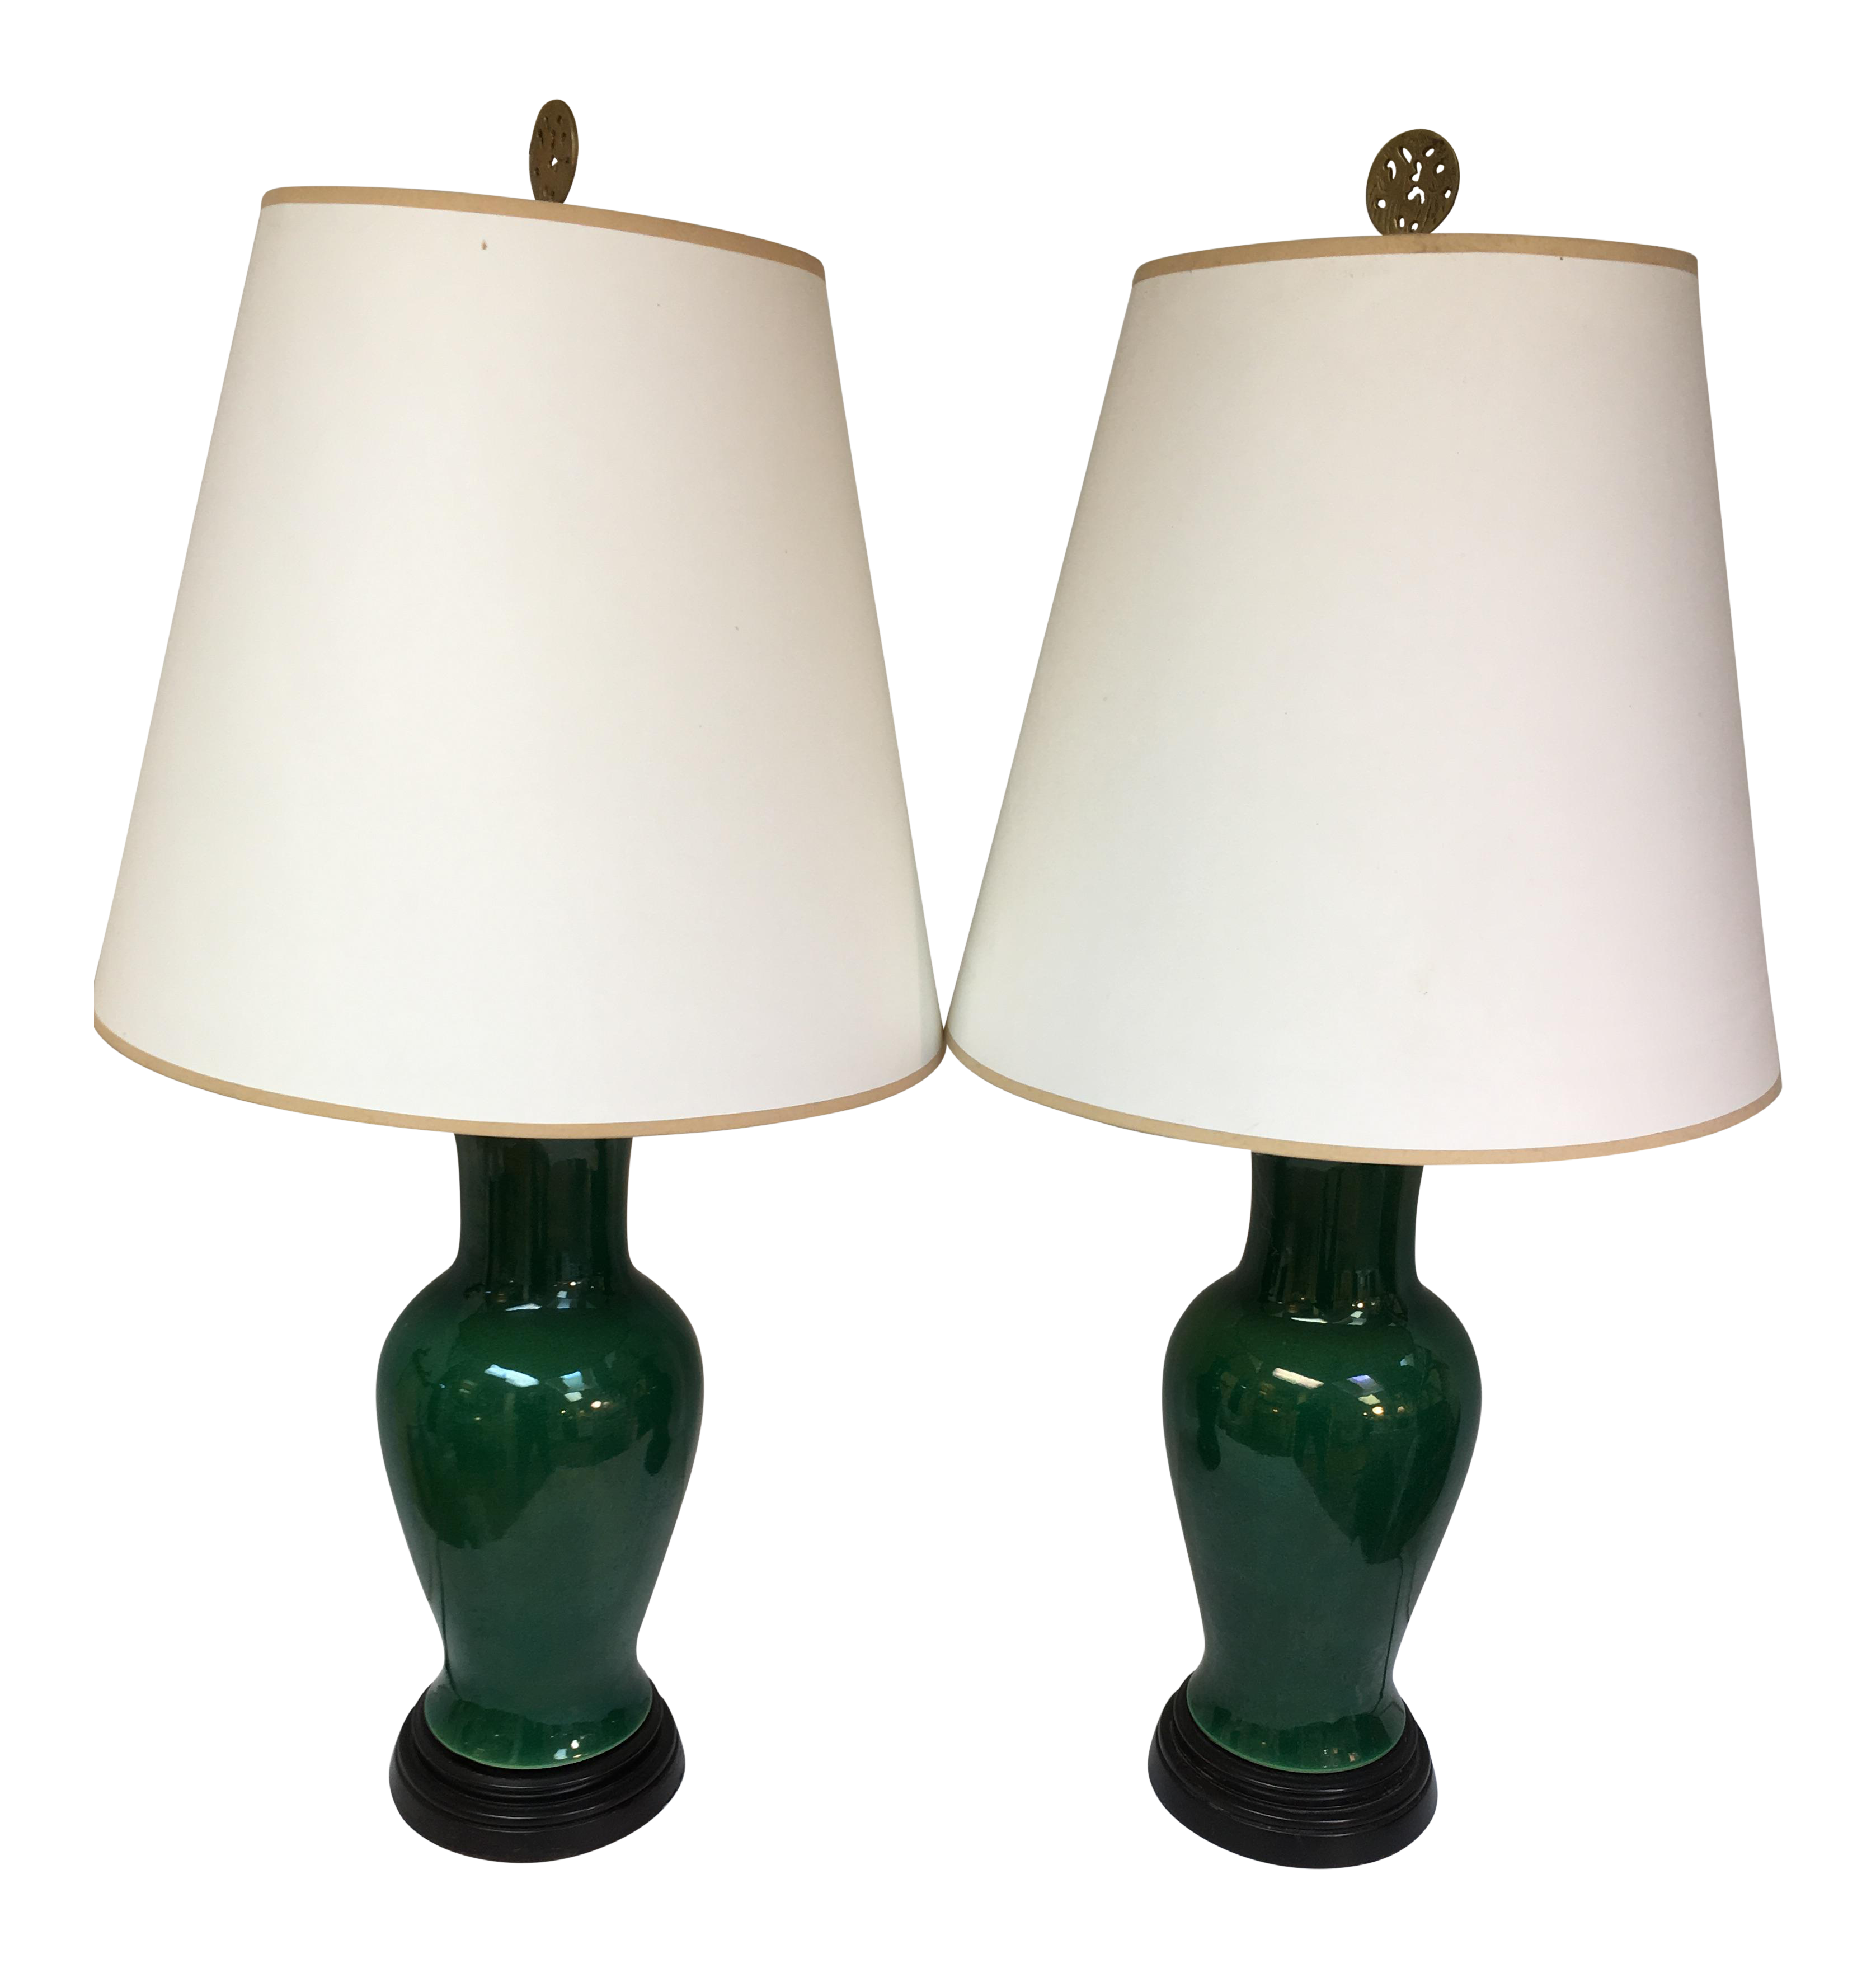 Wildwood Dark Green Crackle Glaze Porcelain Table Lamps  A Pair   Image 1  Of 11